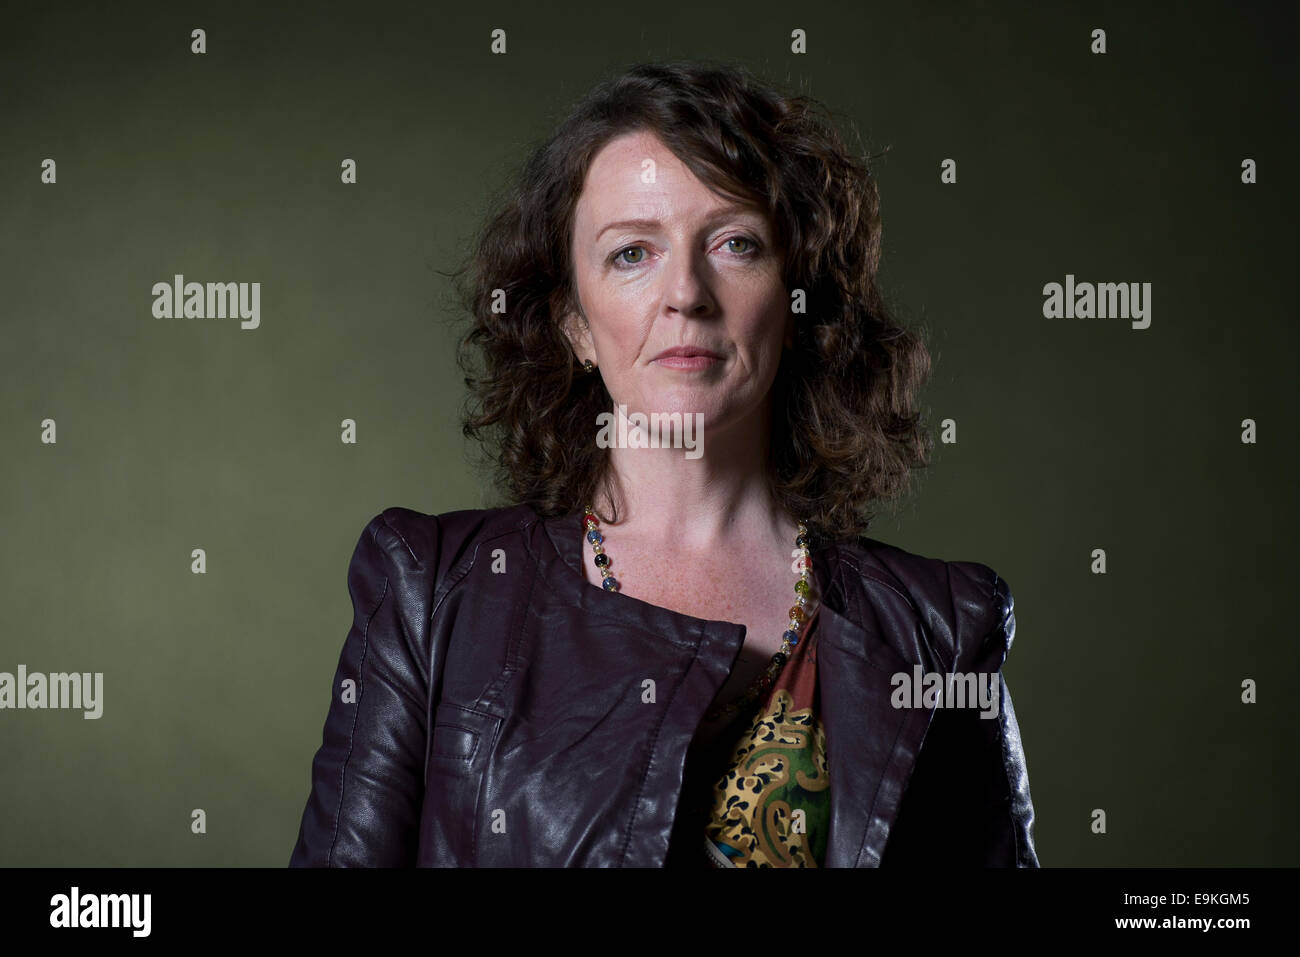 Northern Irish author Michele Forbes appears at the Edinburgh International Book Festival. - Stock Image